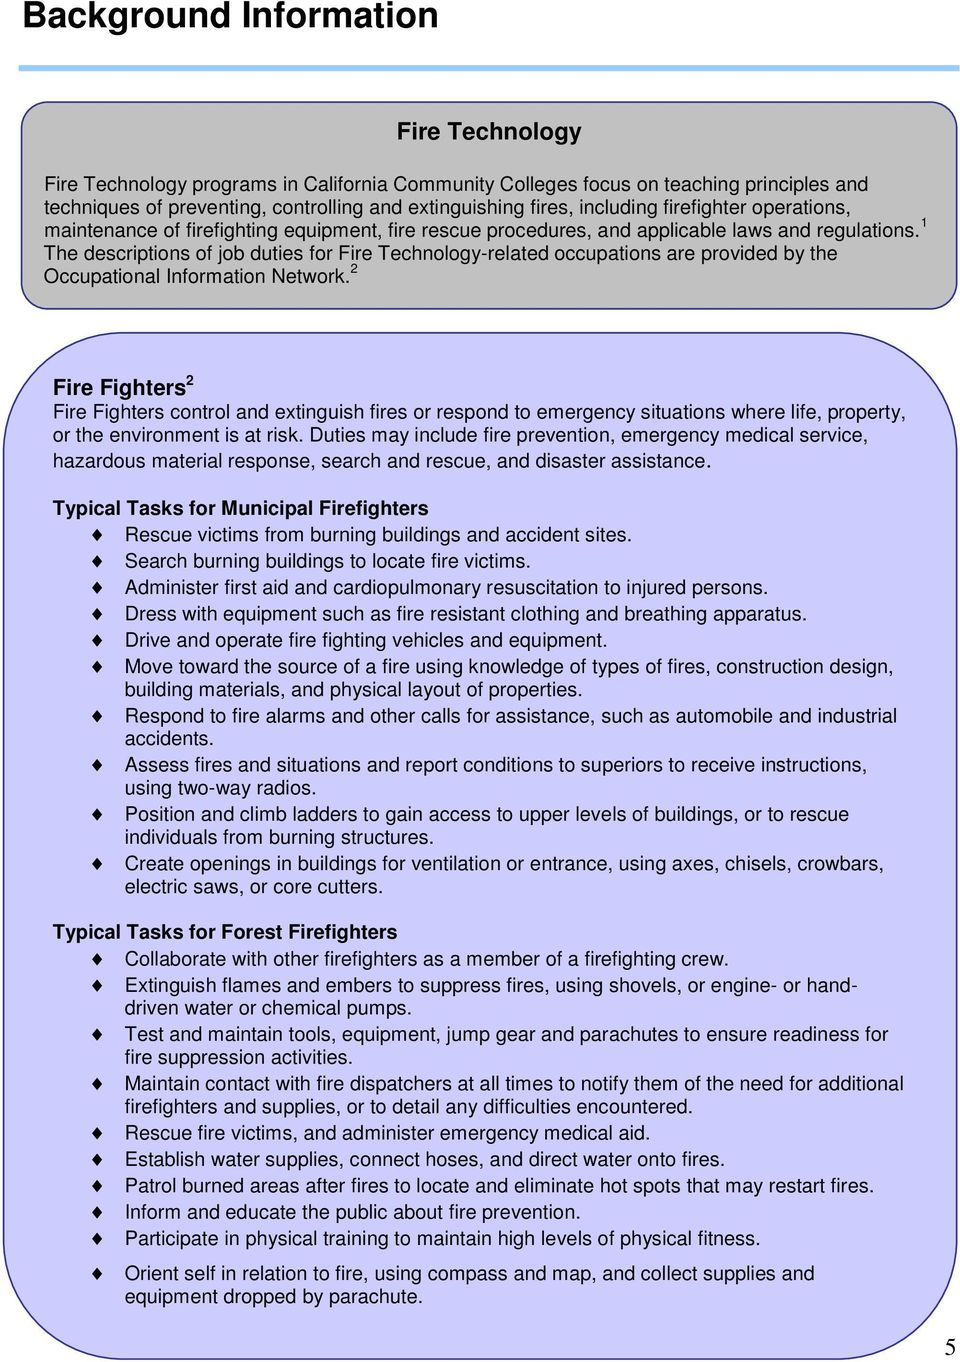 1 The descriptions of job duties for Fire Technology-related occupations are provided by the Occupational Information Network.